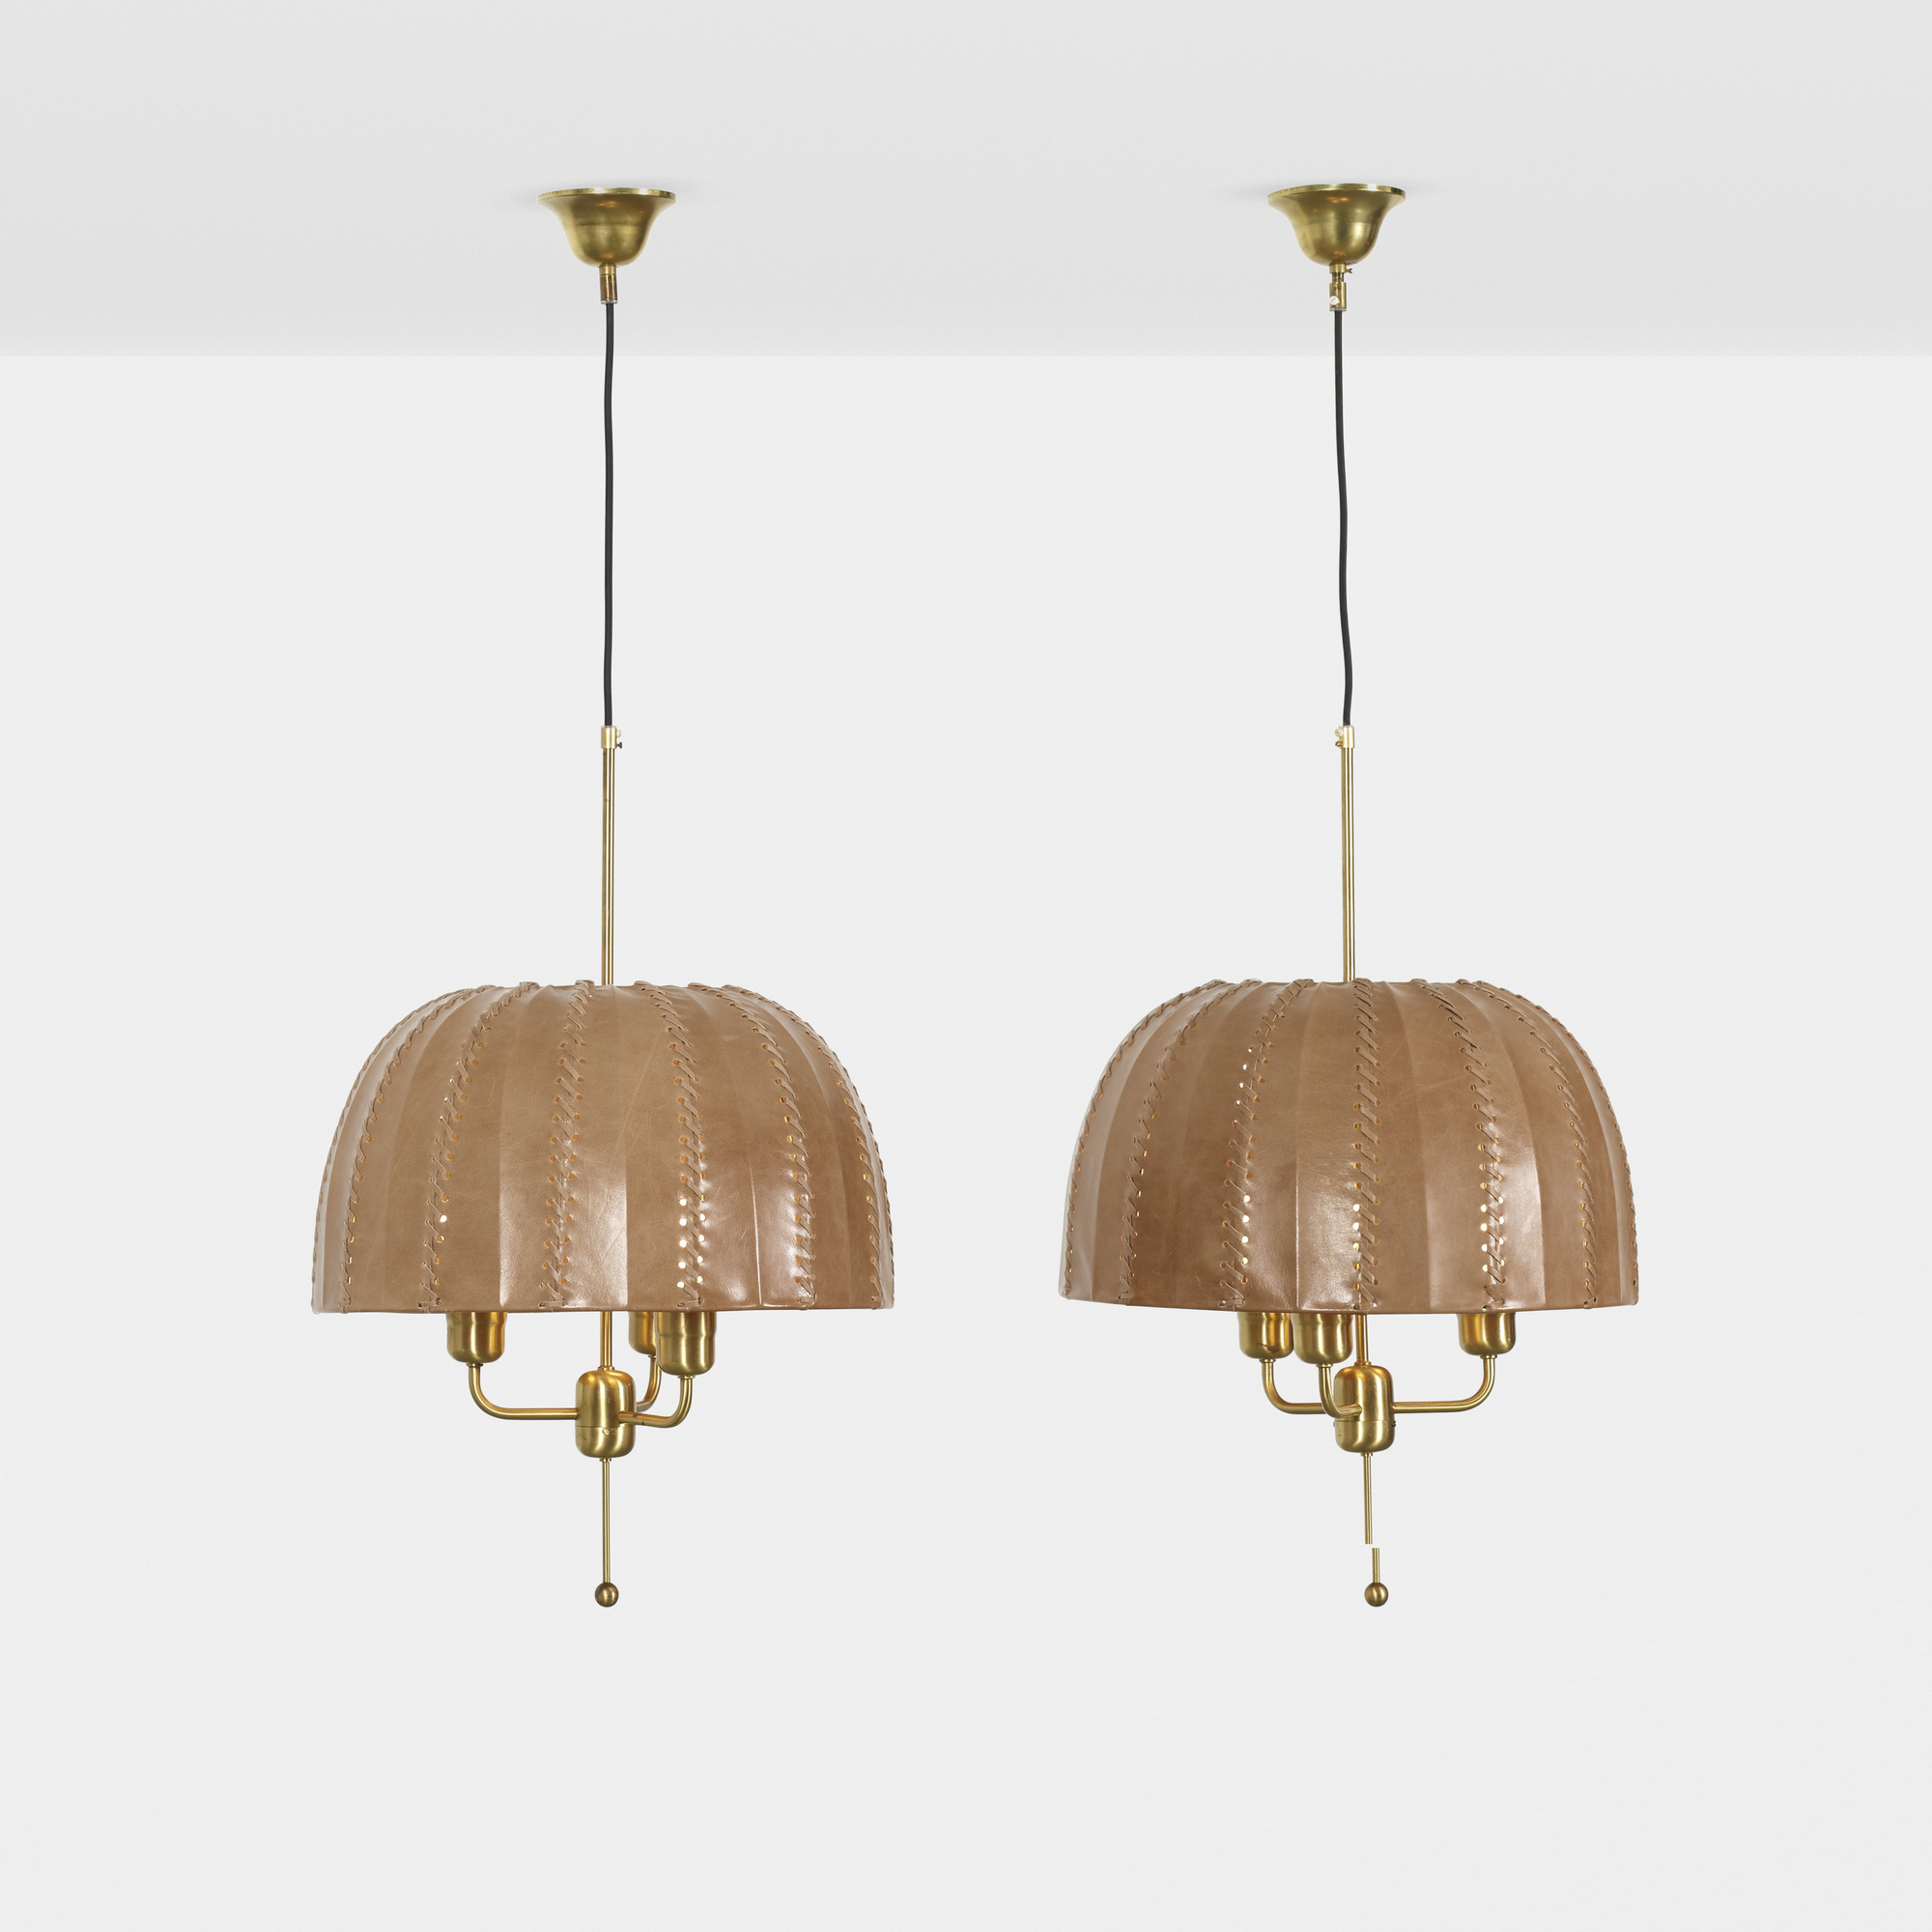 323: Hans-Agne Jakobsson / chandeliers, pair (1 of 1)